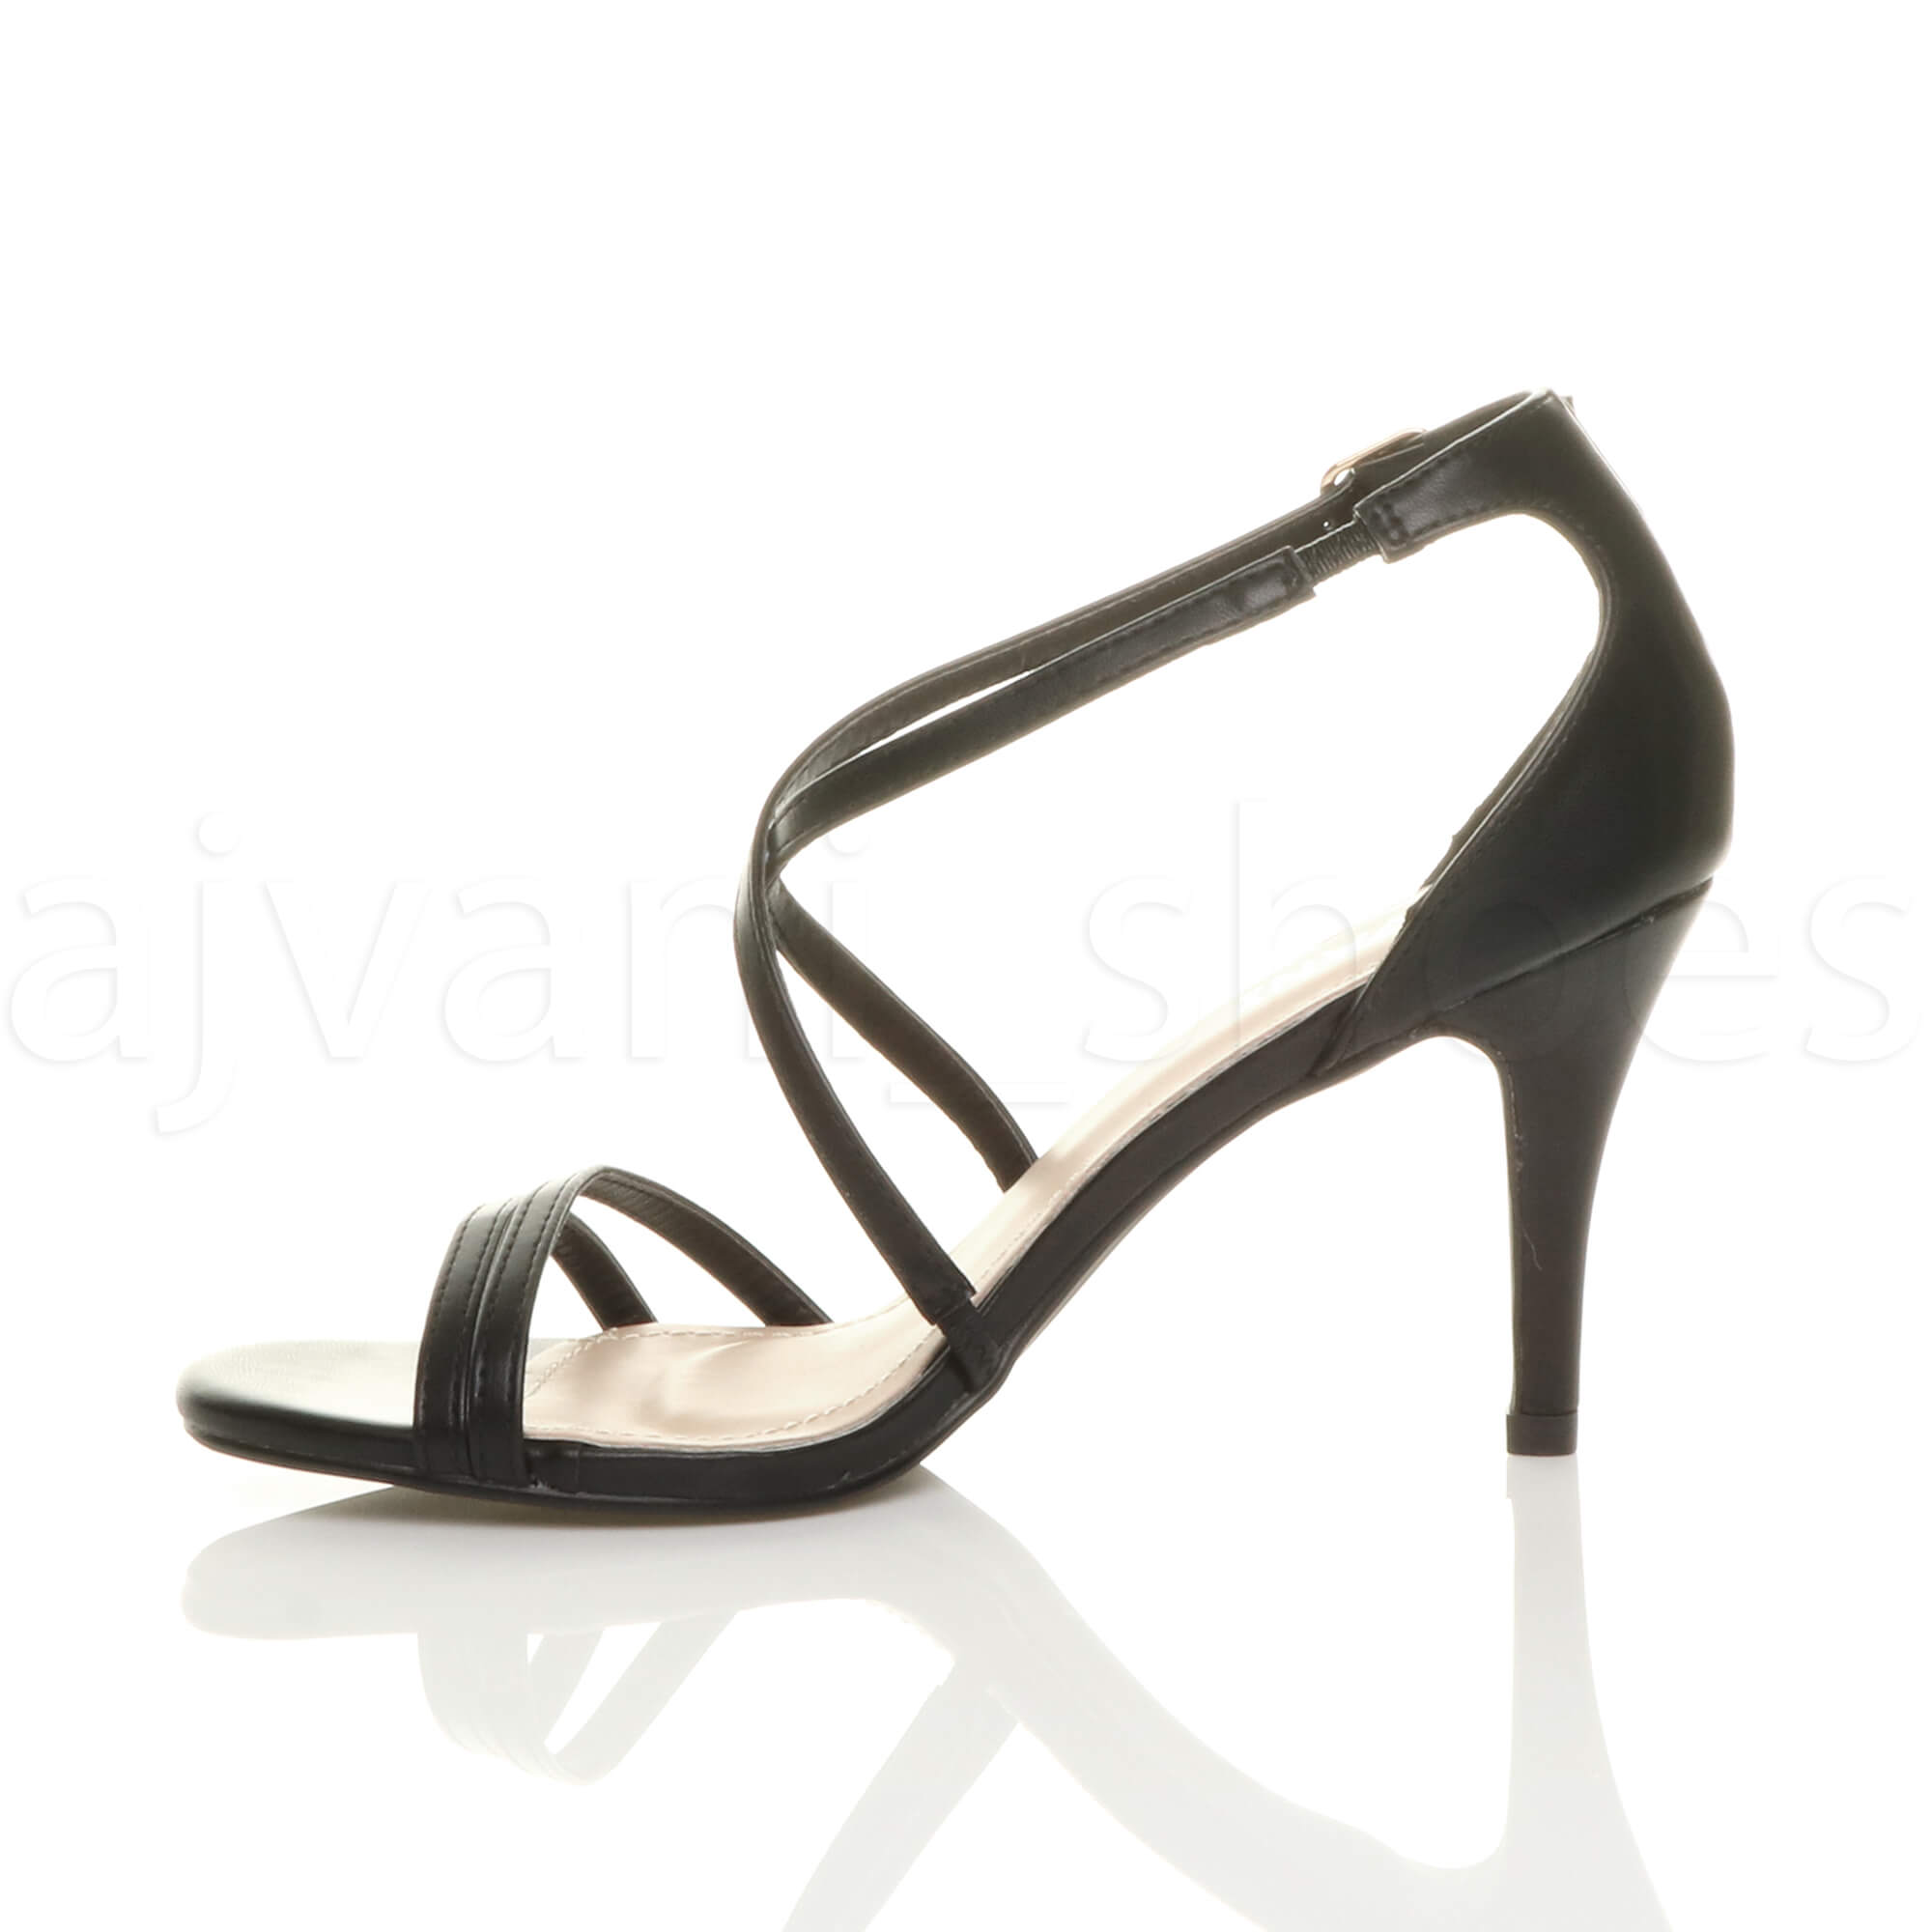 WOMENS-LADIES-MID-HIGH-HEEL-STRAPPY-CROSSOVER-WEDDING-PROM-SANDALS-SHOES-SIZE thumbnail 18